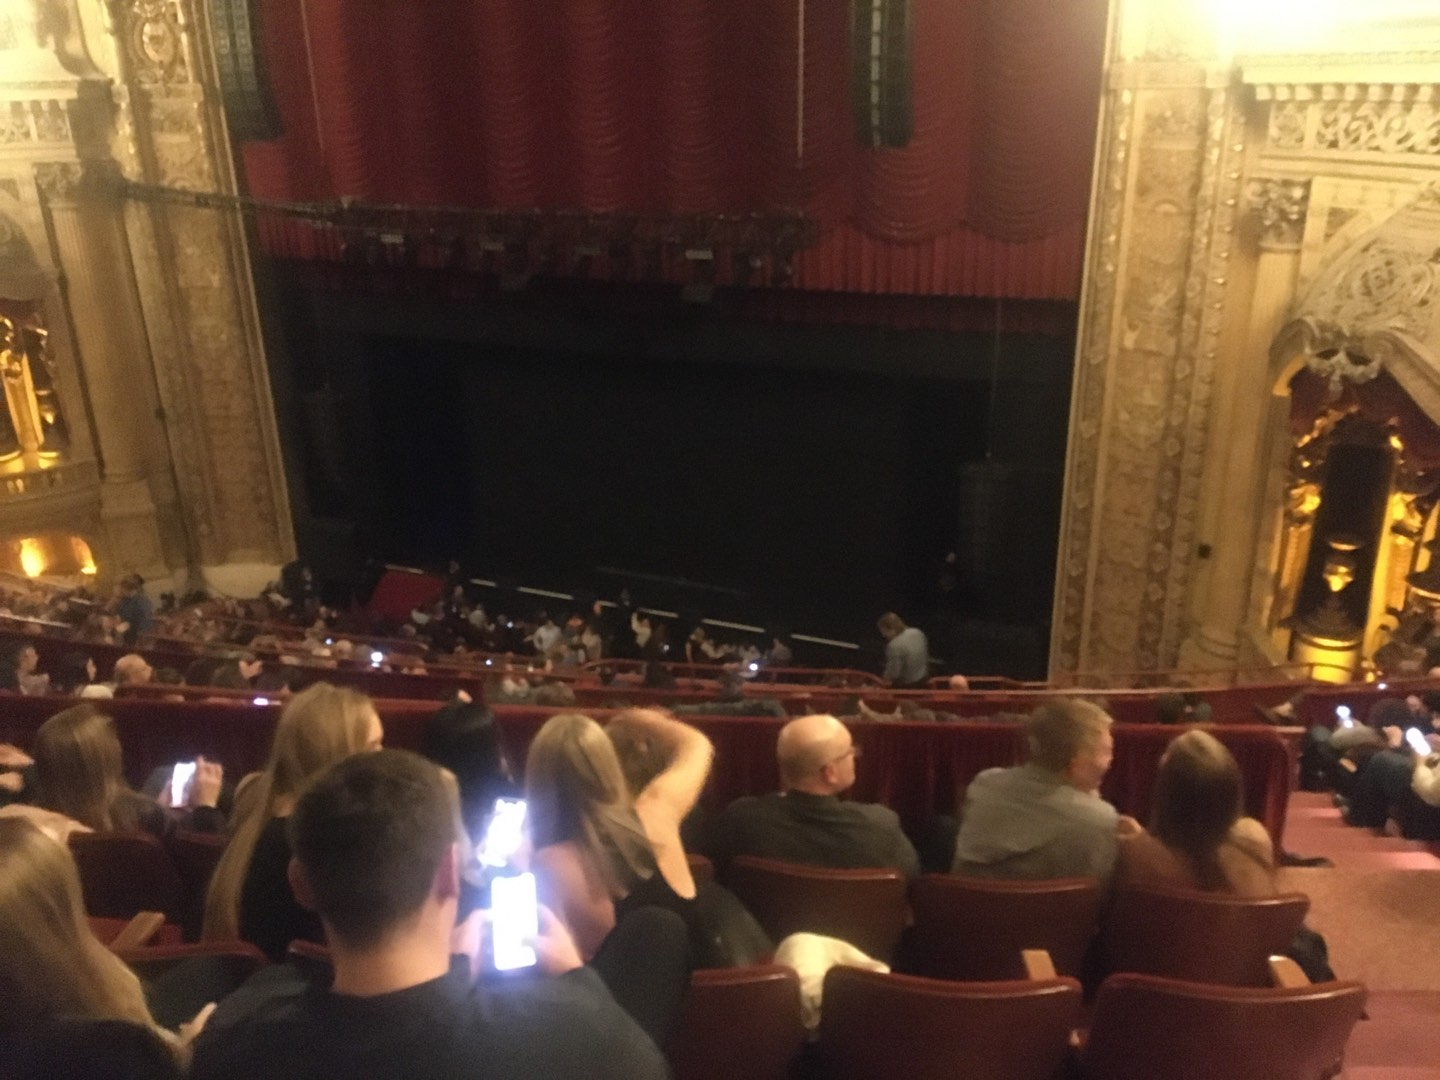 Chicago Theatre Section Balcony2R Row K Seat 220